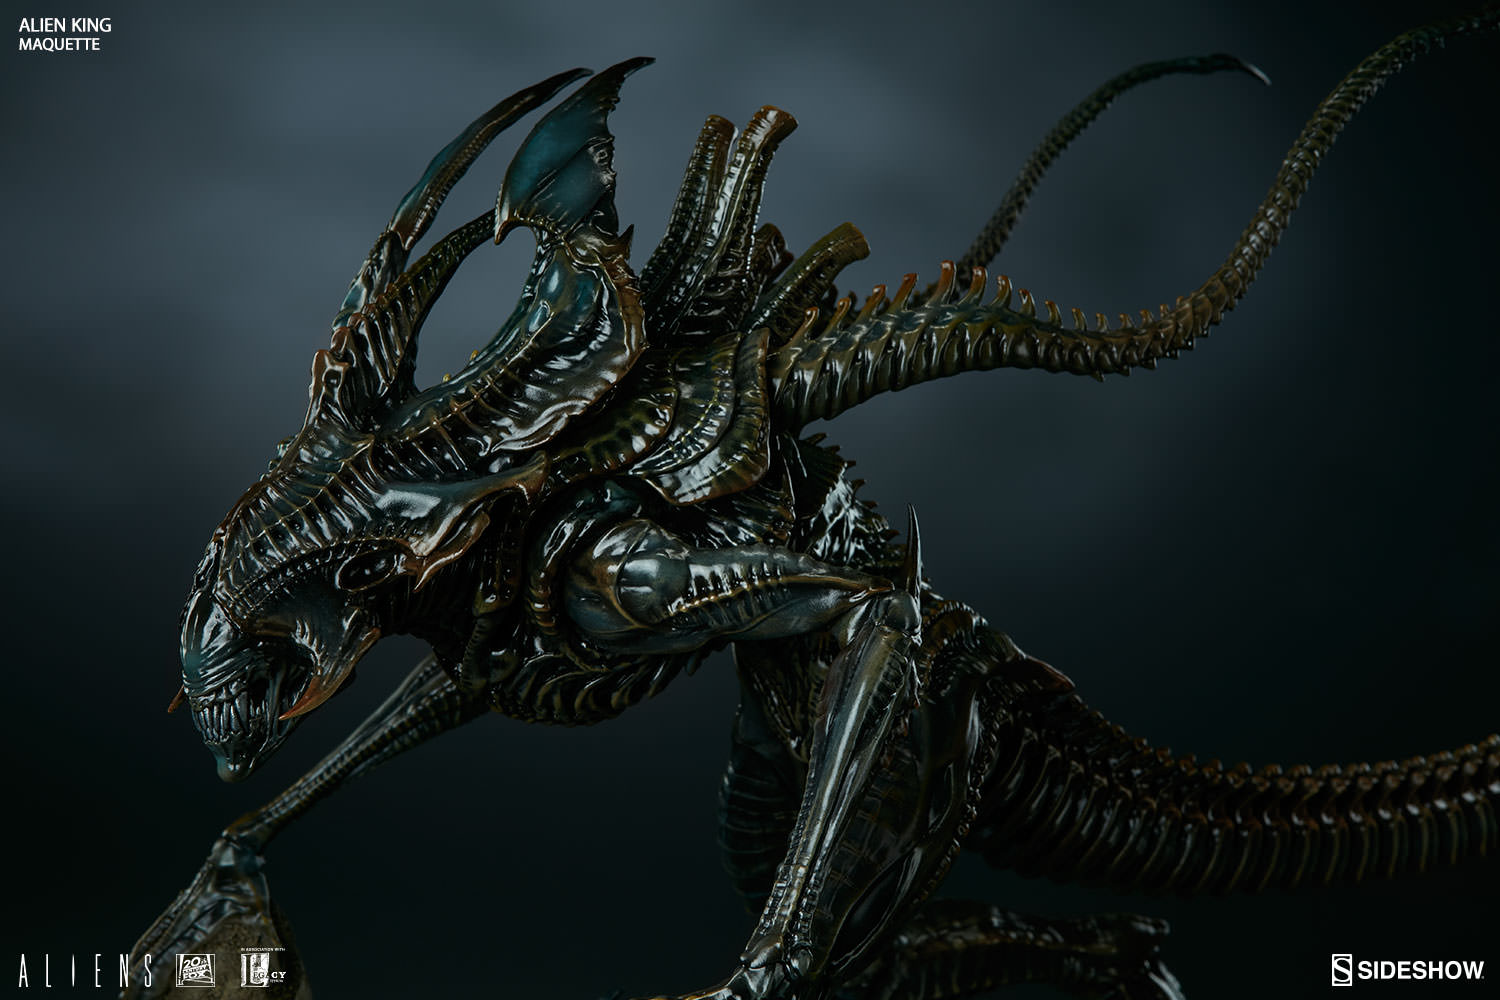 Alien King Maquette (Sideshow Collectibles) - AvPGalaxy H.r. Giger Wallpaper